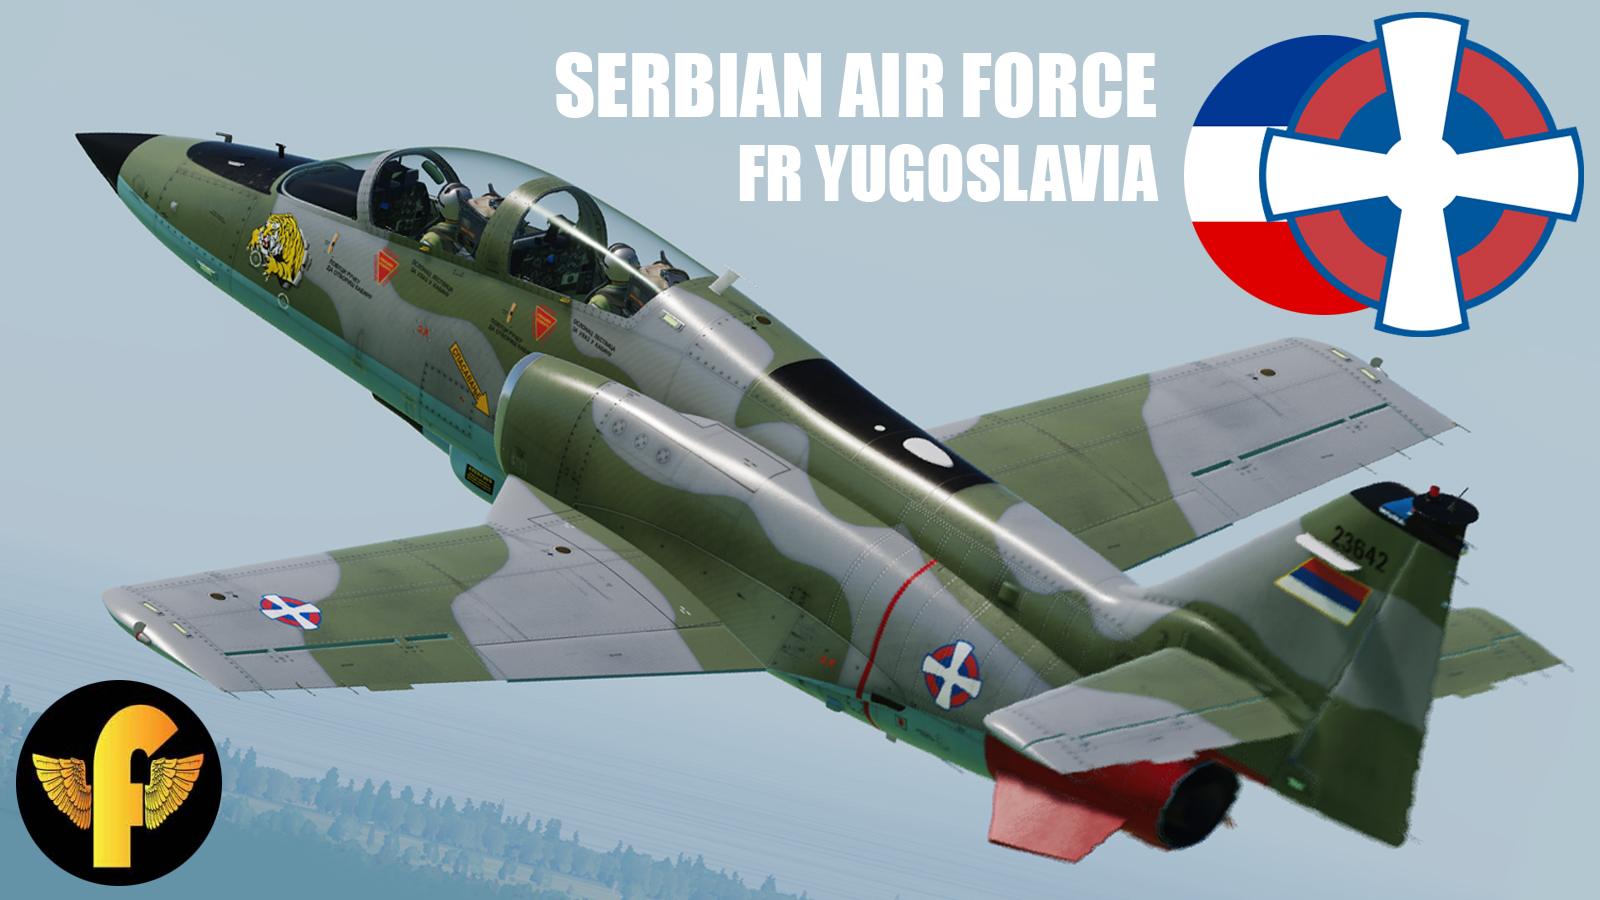 C-101CC/EB Serbian Air Force / FR Yugoslavia 241. lbae Fictive #1